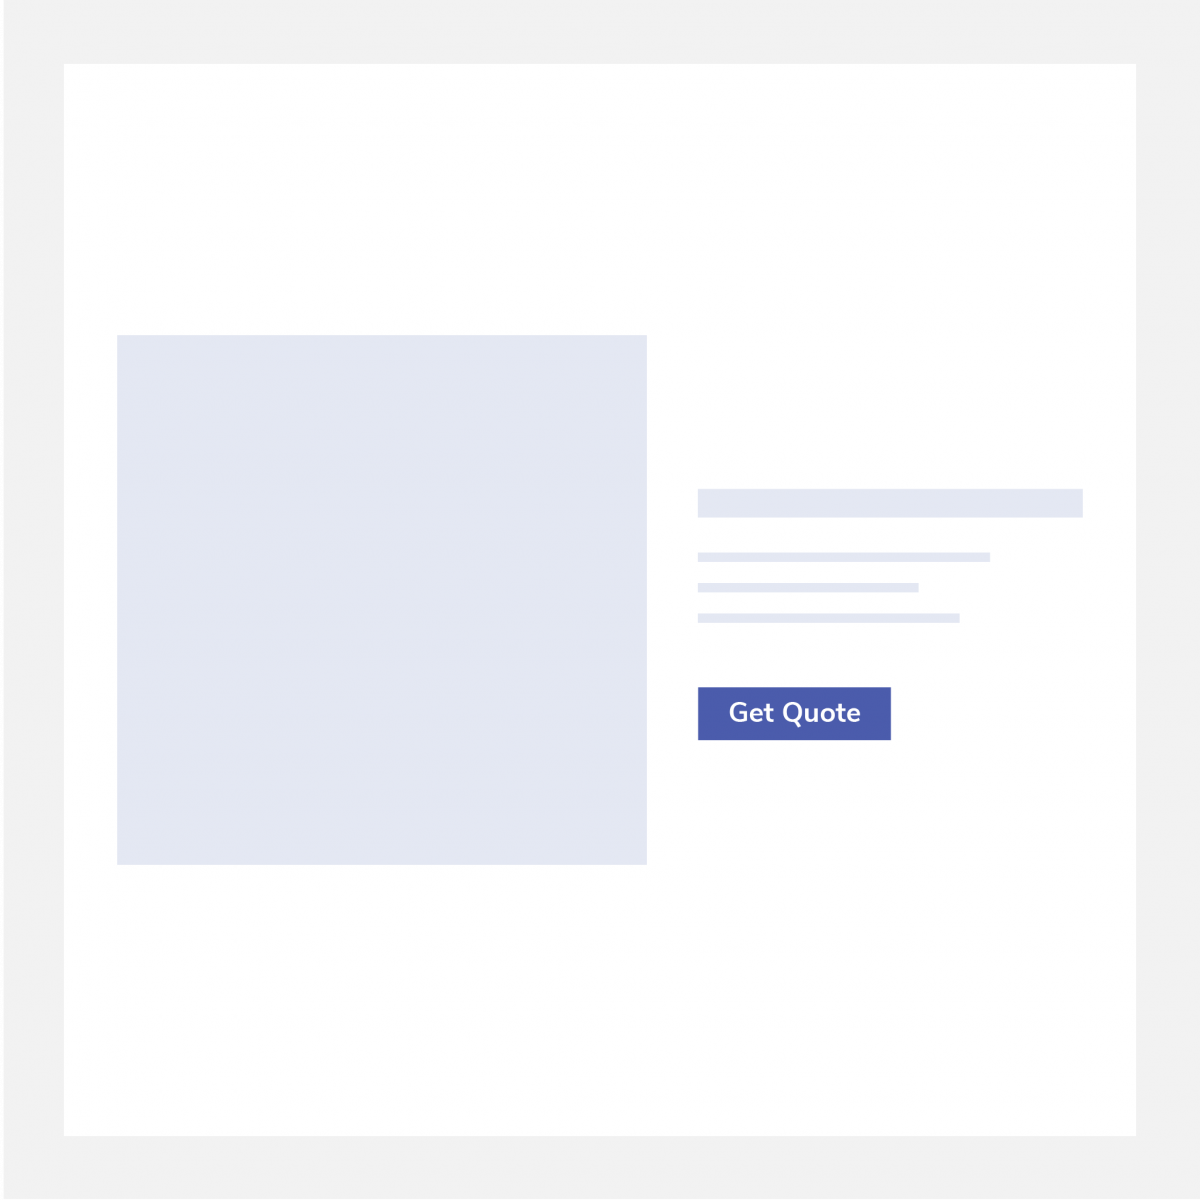 Add Request A Quote Form and Hide Product Price